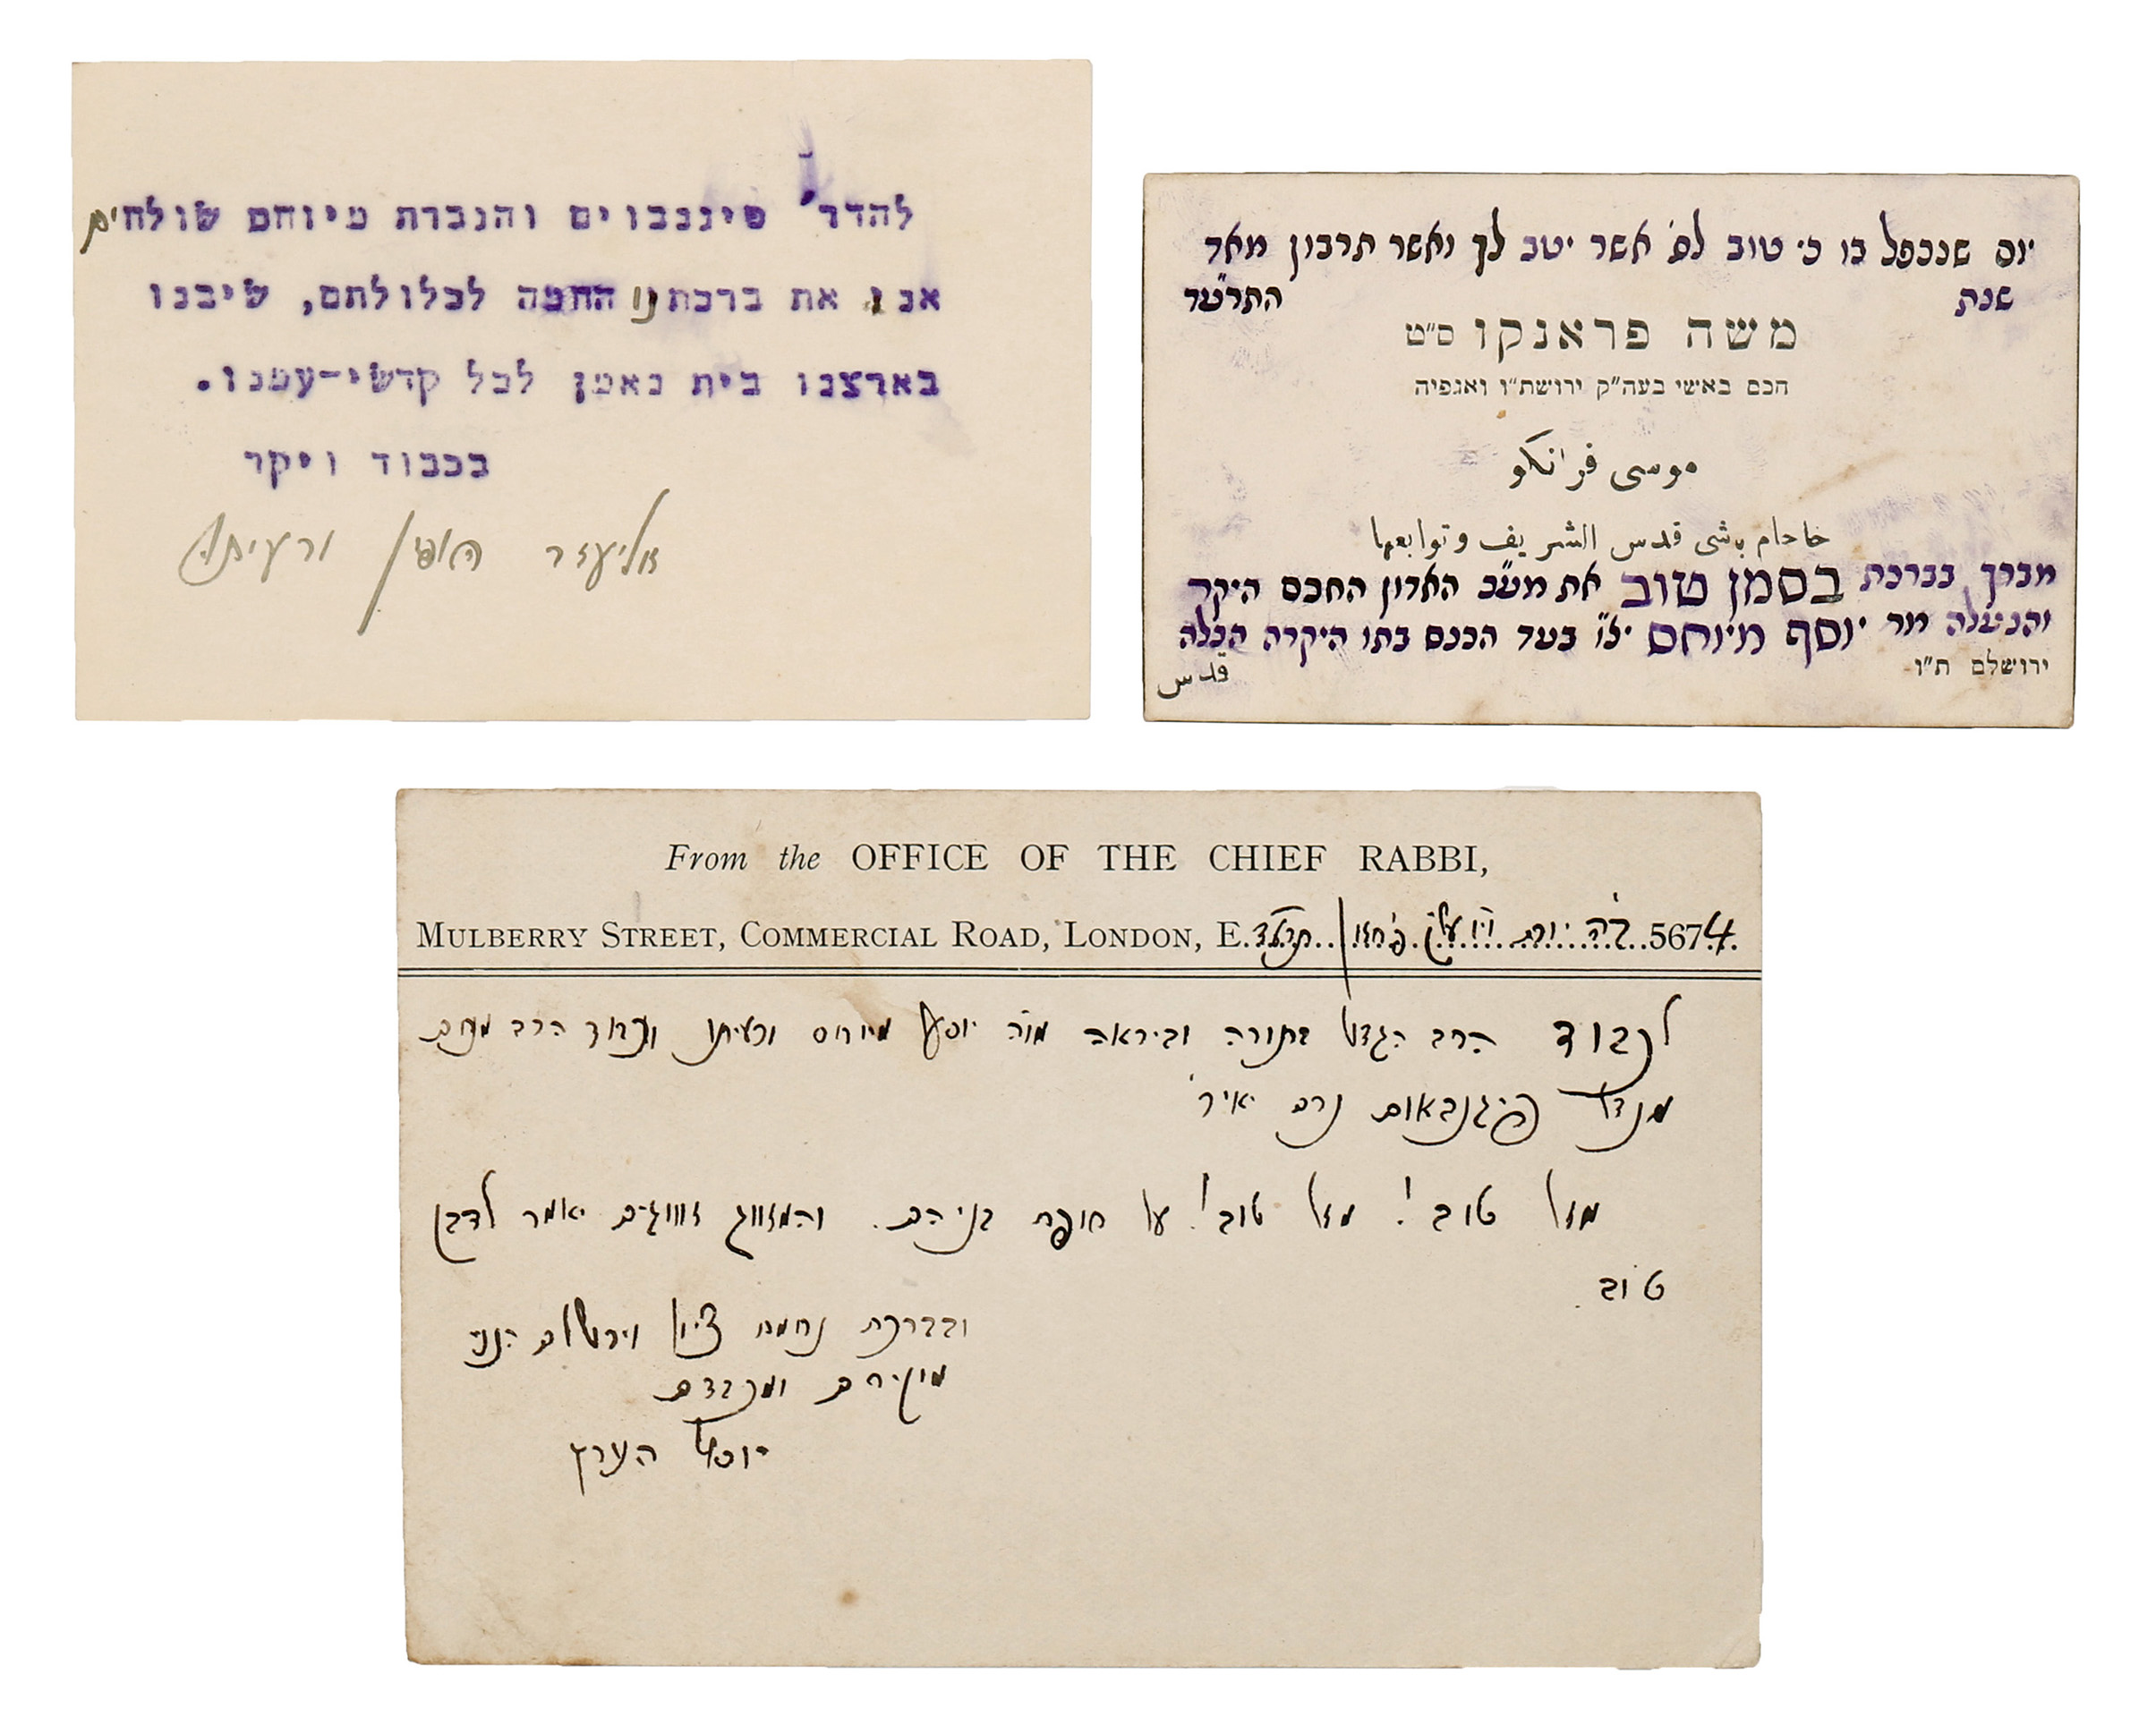 Collection of greetings for the wedding of aryeh feigenbaum and pamphlet of family tree third edition salis press jerusalem 1963 ketavim sipurim al mishpachat meyuchas by hemda zinder jerusalem 1989 kristyandbryce Image collections